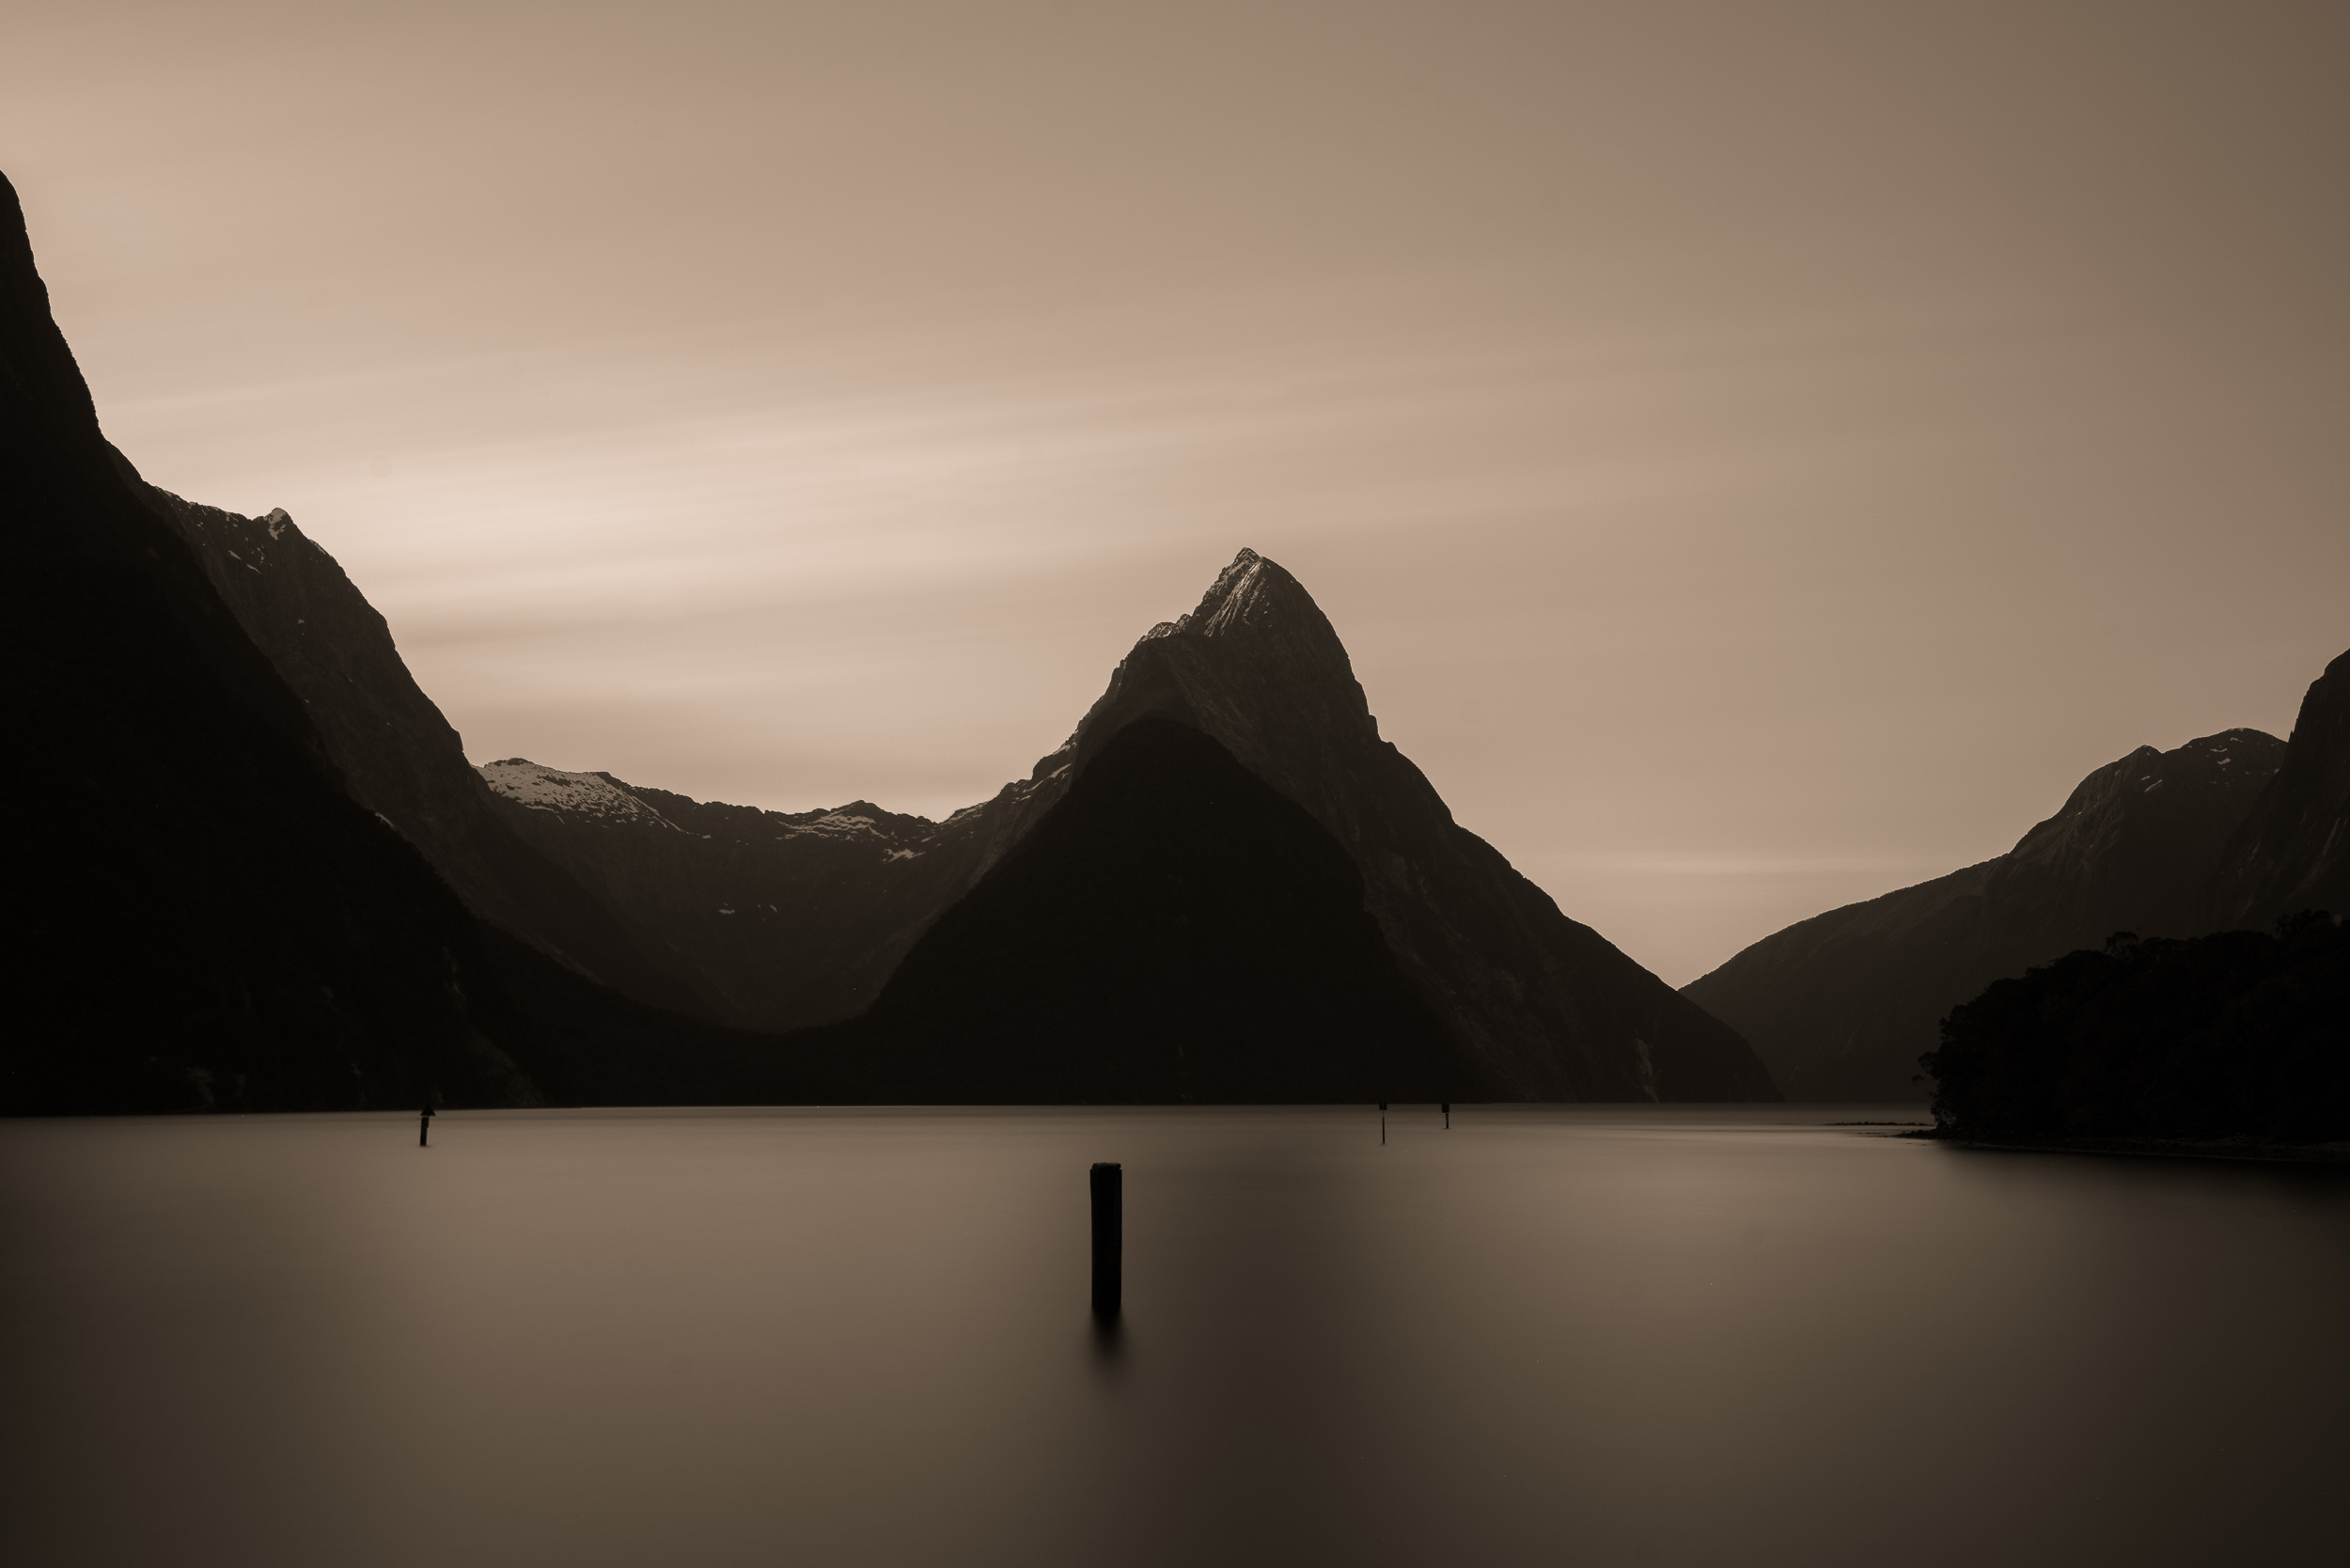 Tranquility and peace    awaits the visitor at the beautiful    Milford Sound    on the South Island of New Zealand.